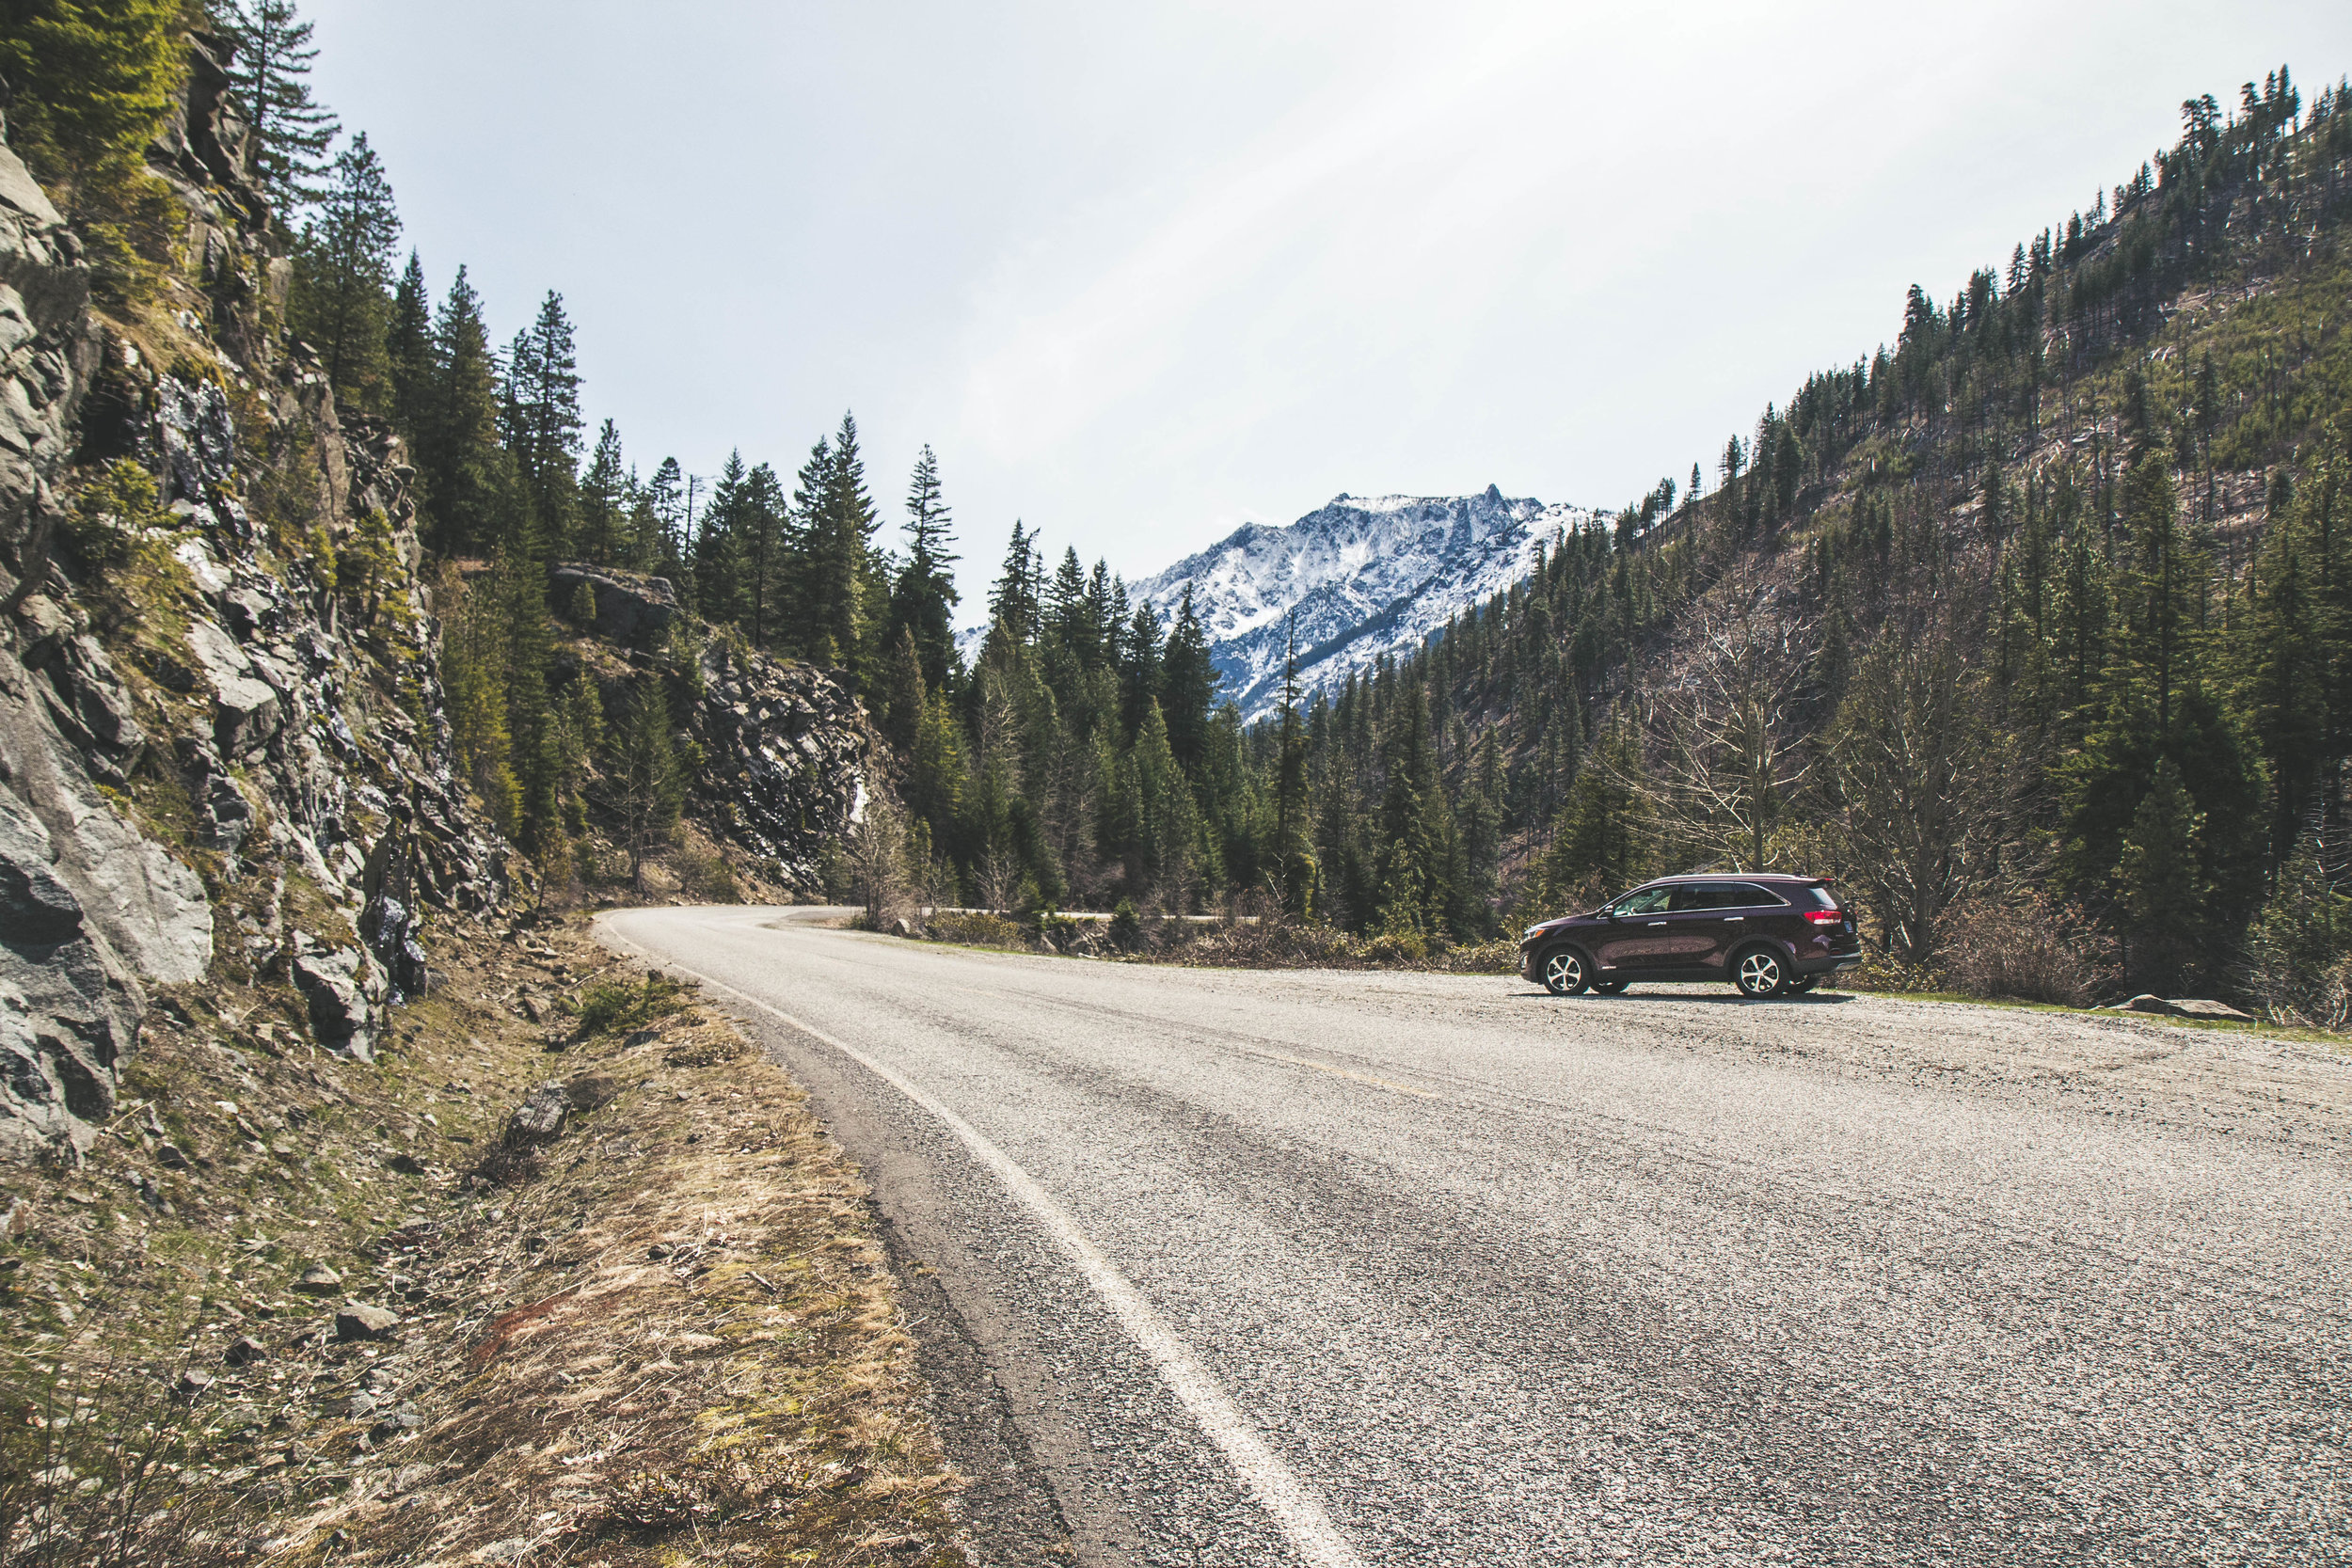 Wentachee and Leavenworth Washington. An amazing travel guide by lifestyle and travel blogger Bri Sul.